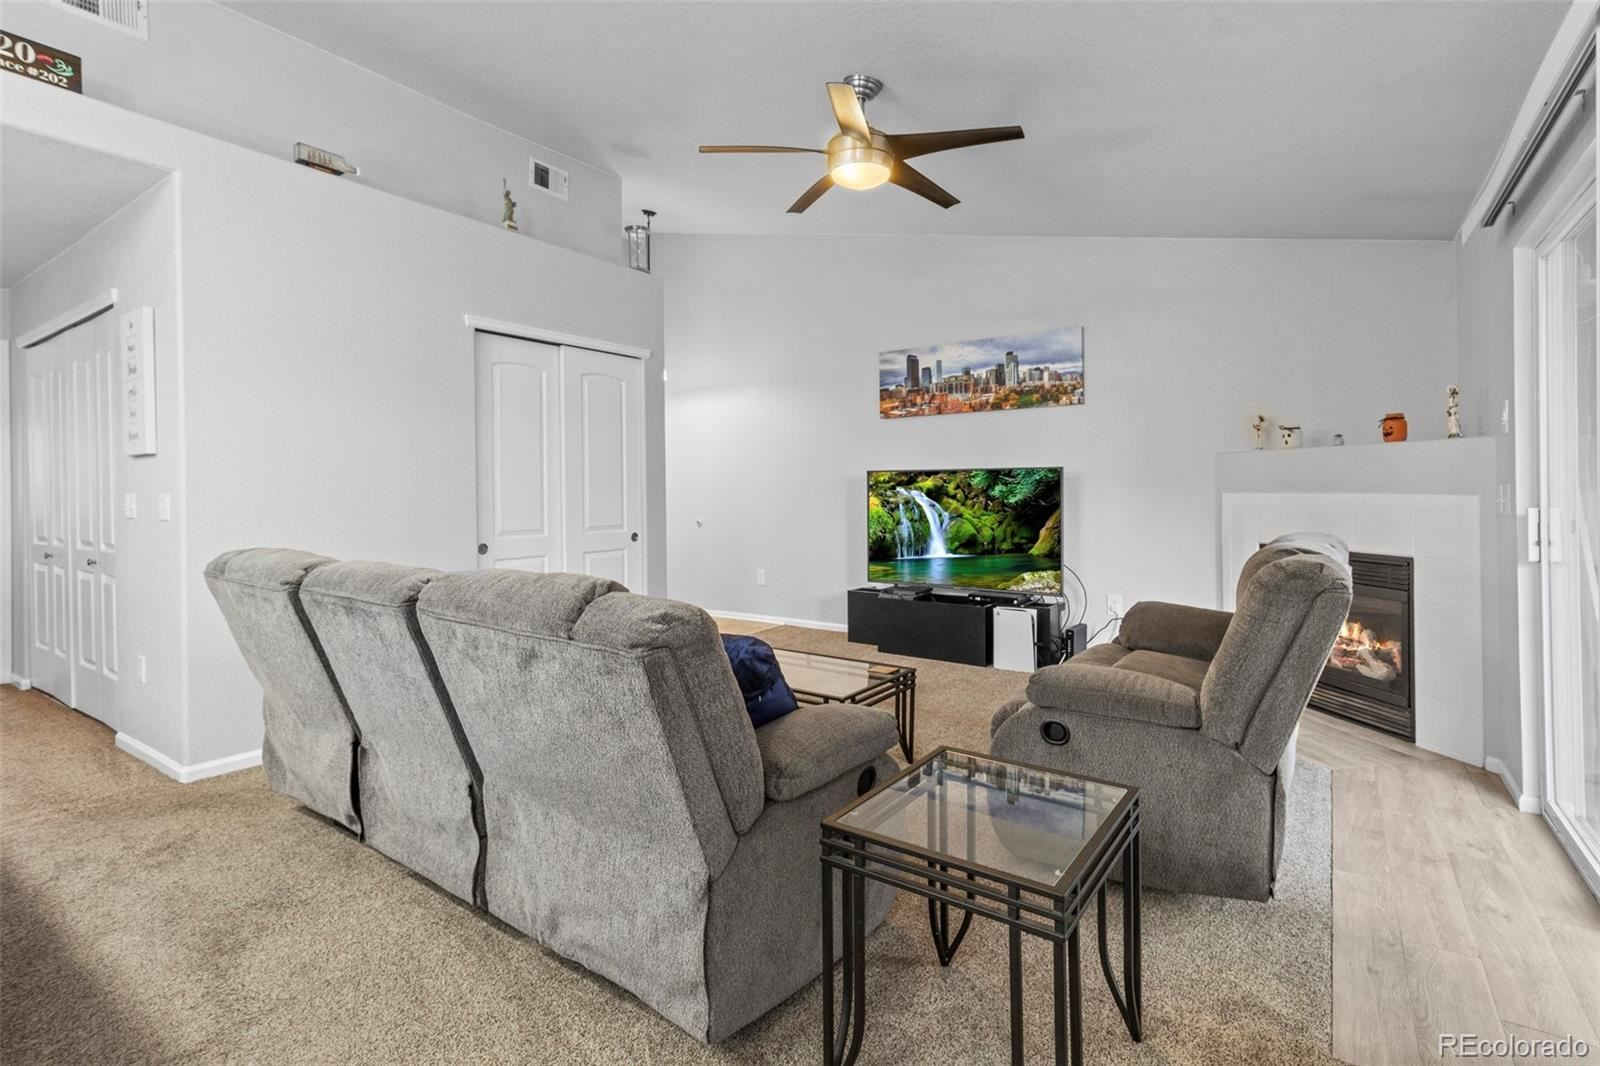 Photo of 11620 W 62nd Place #202, Arvada, CO 80004 (MLS # 4760892)